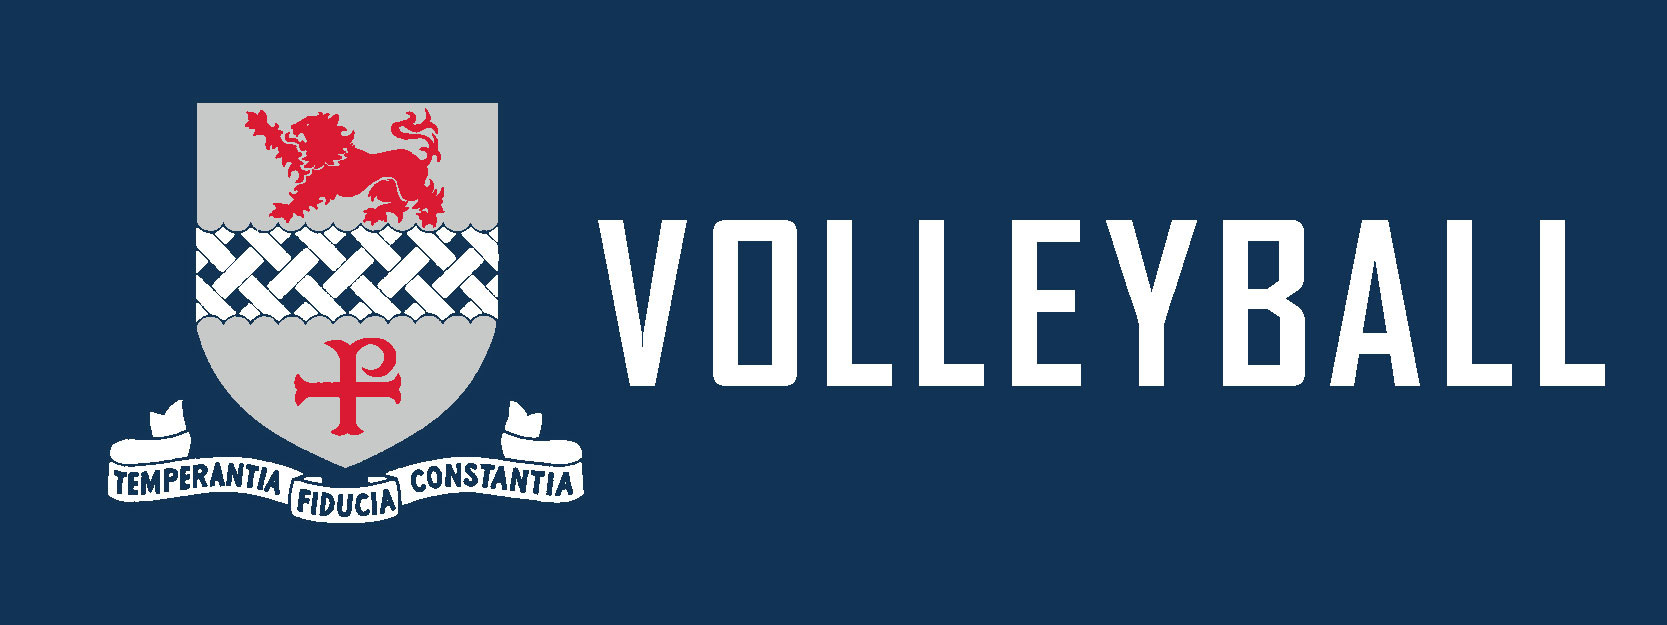 Volleyball livestream logo